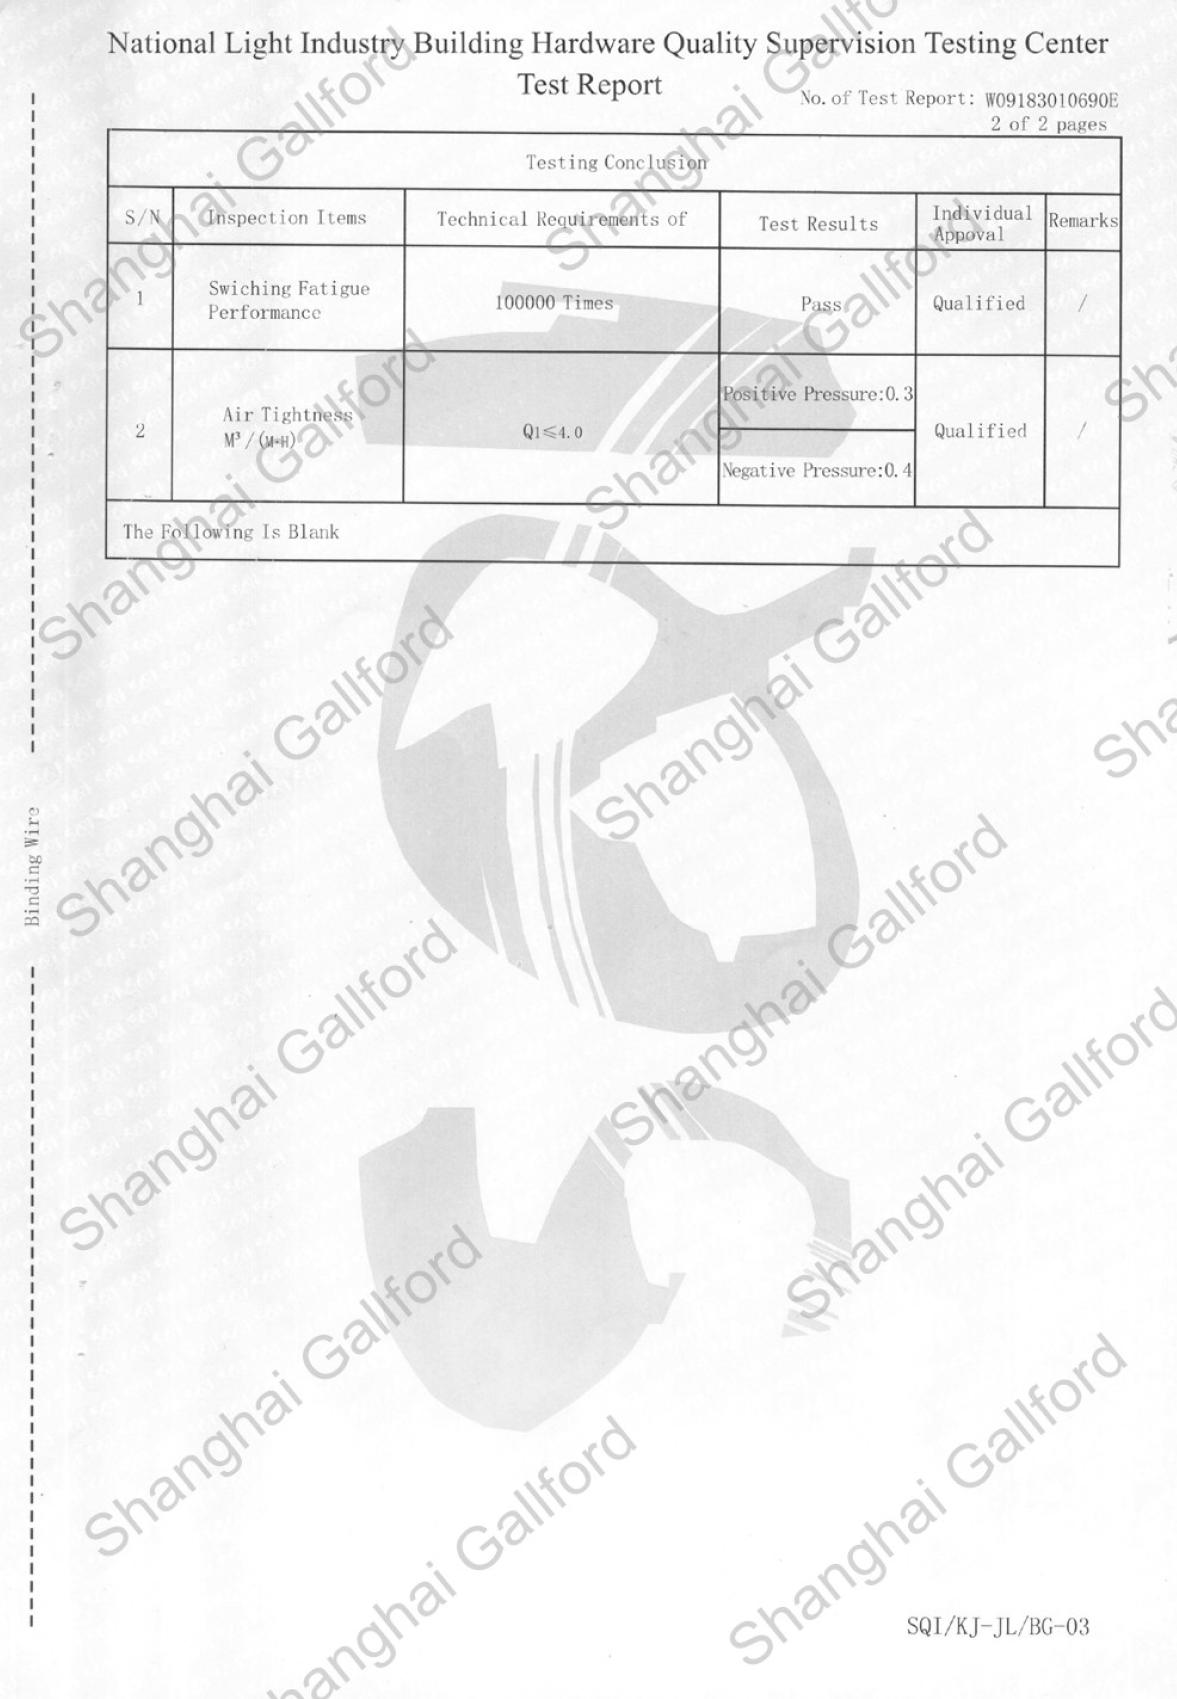 Test Report for Automatic door bottom seal